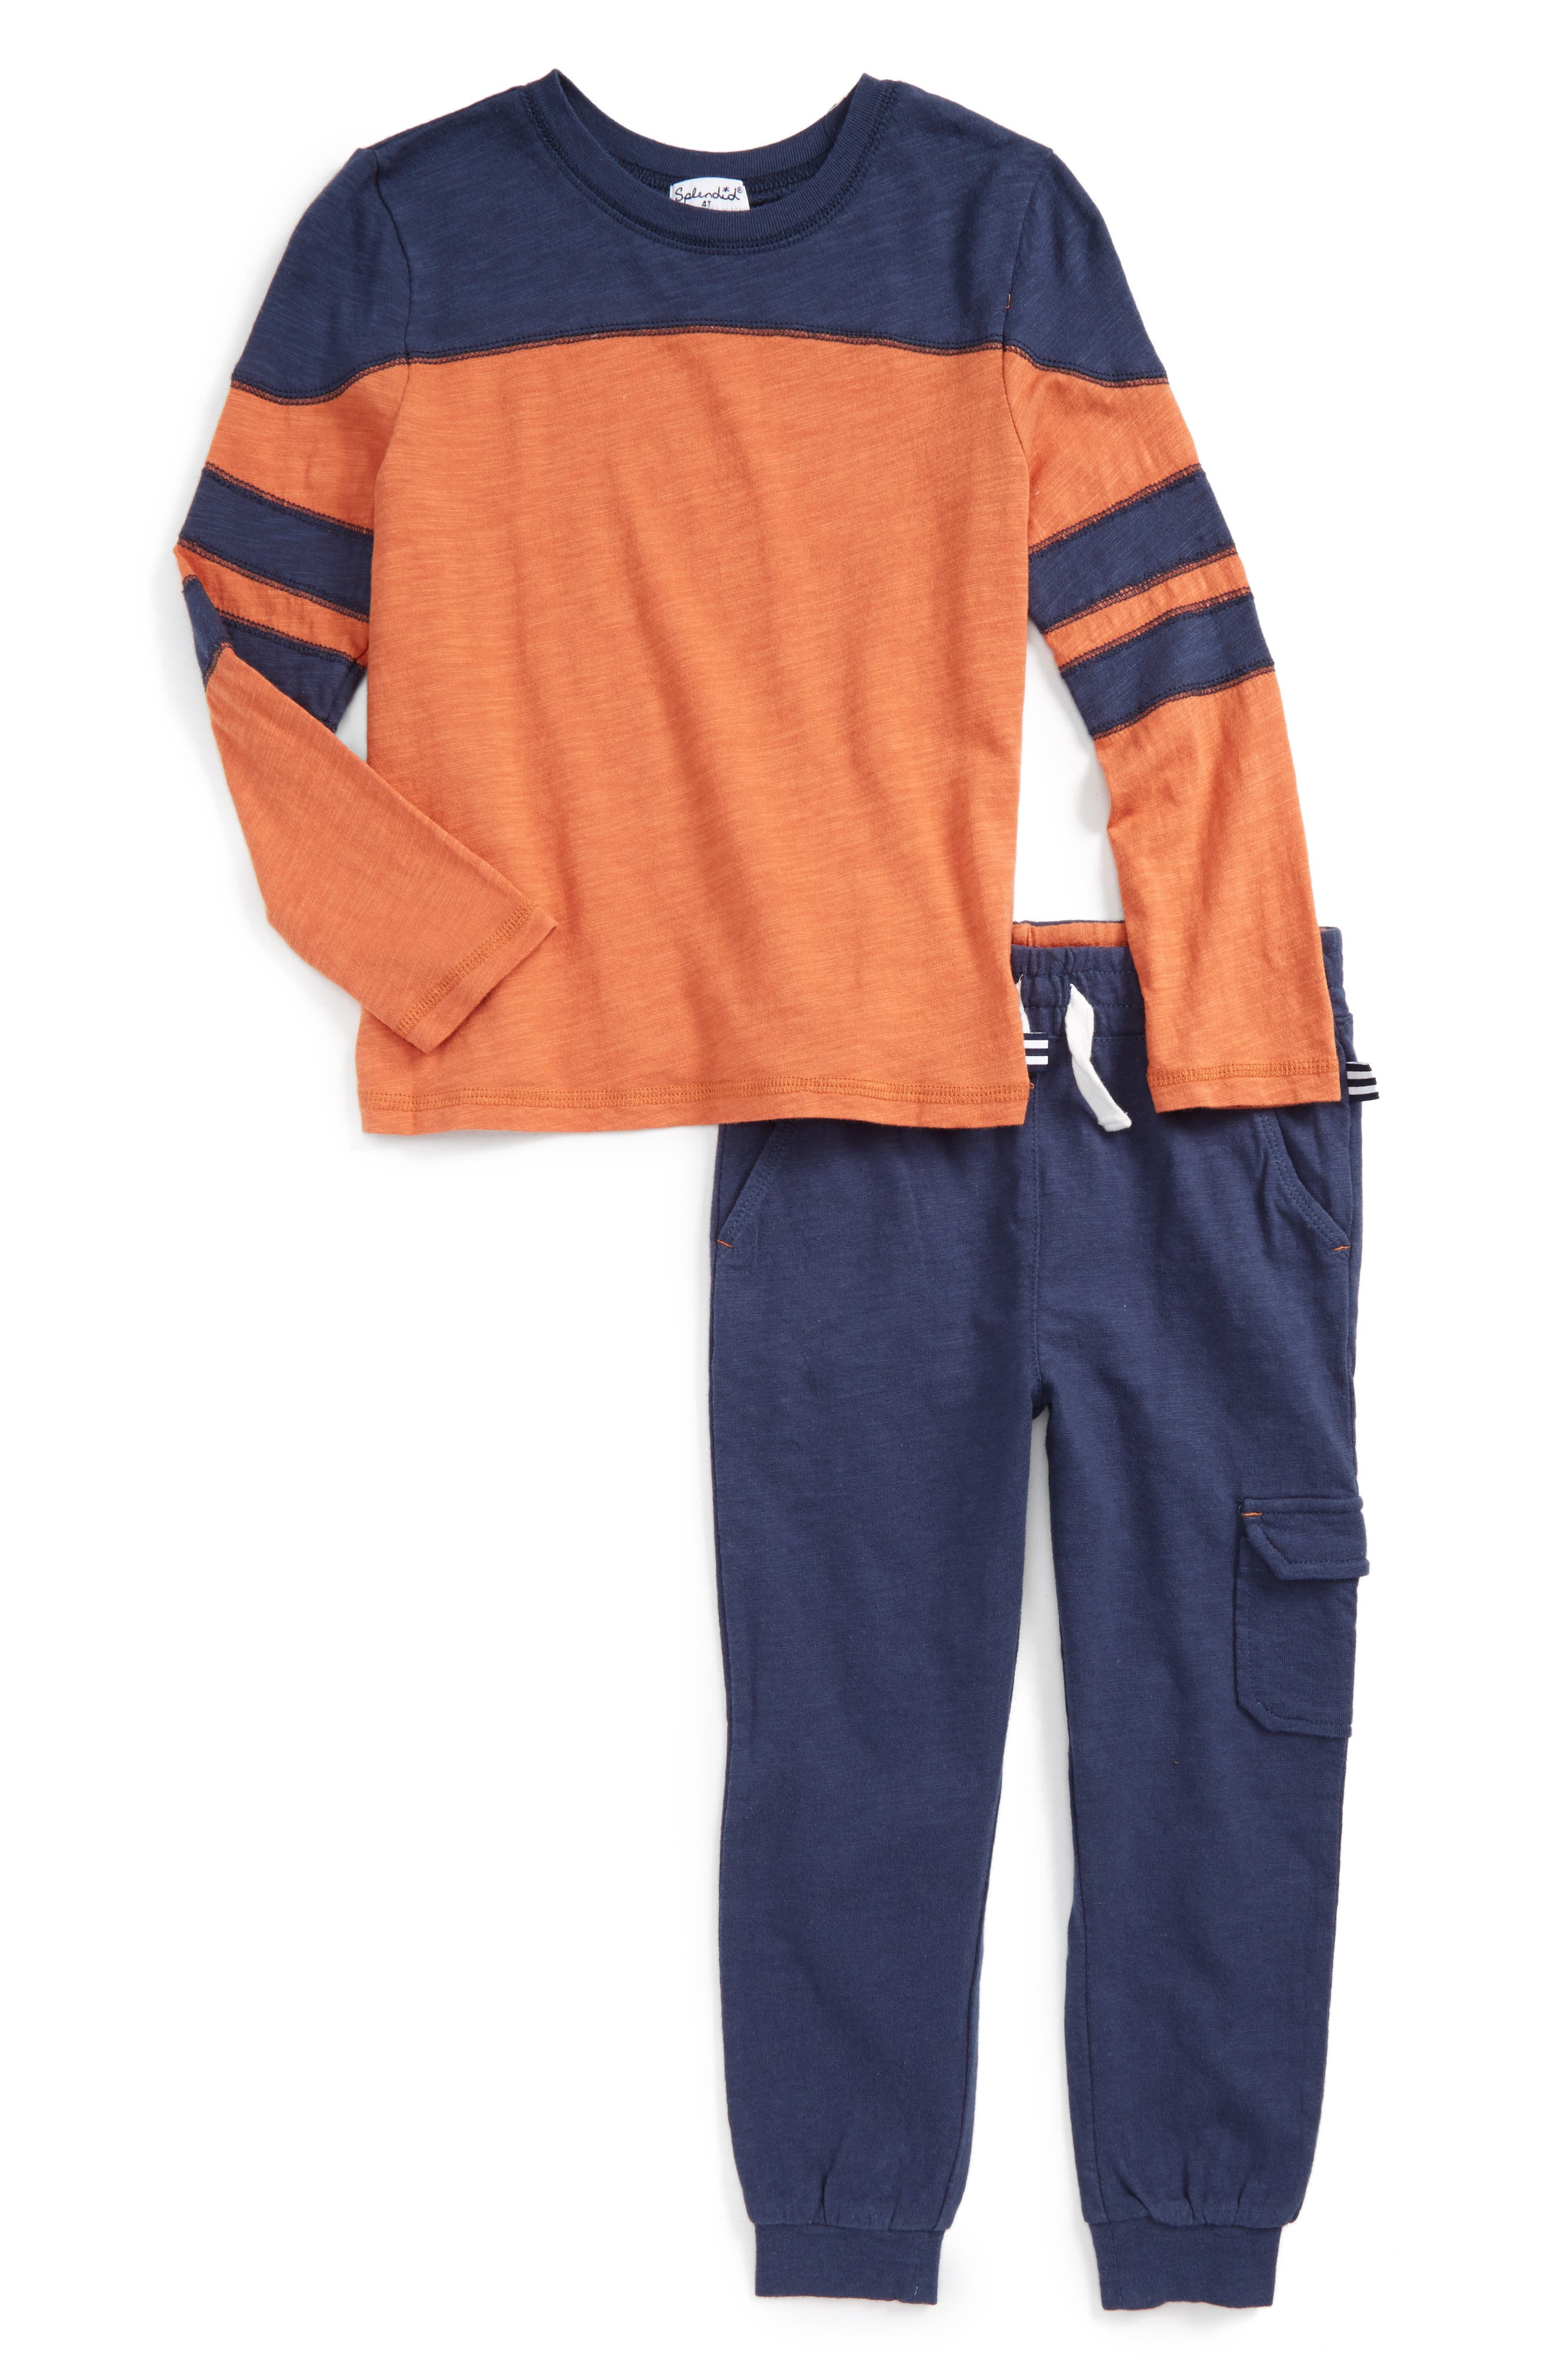 Splendid Long Sleeve T-Shirt & Jogger Pants (Toddler Boys & Little Boys)